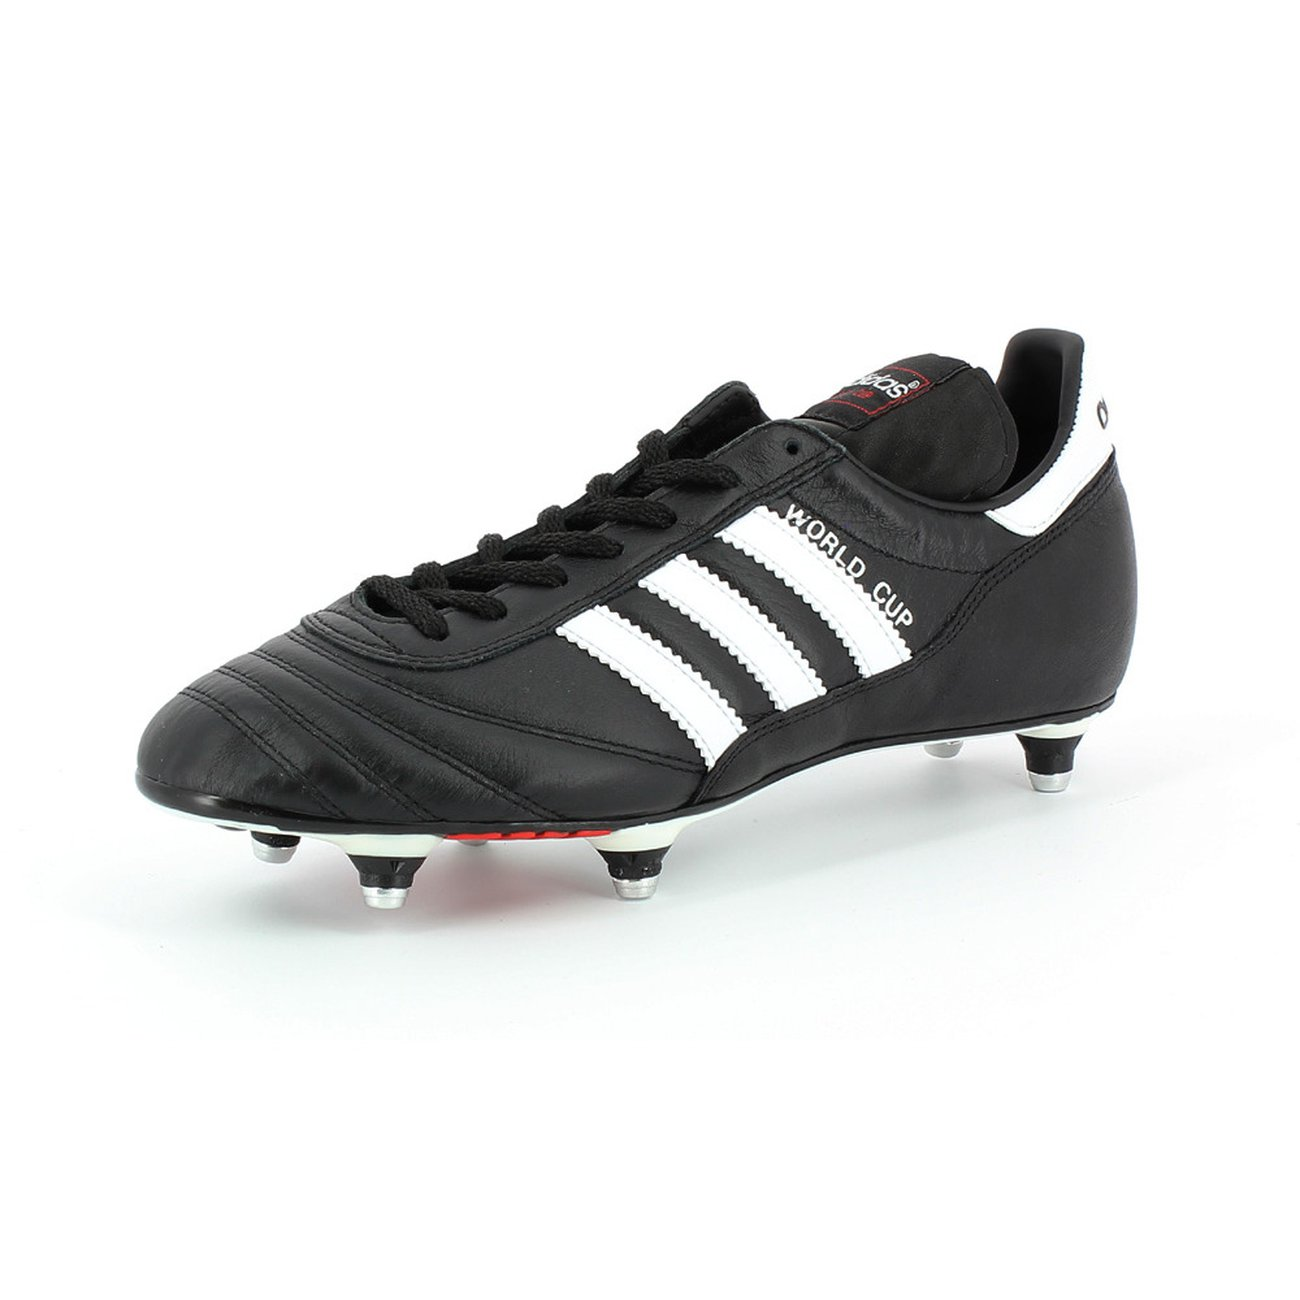 chaussure de foot crampon homme adidas